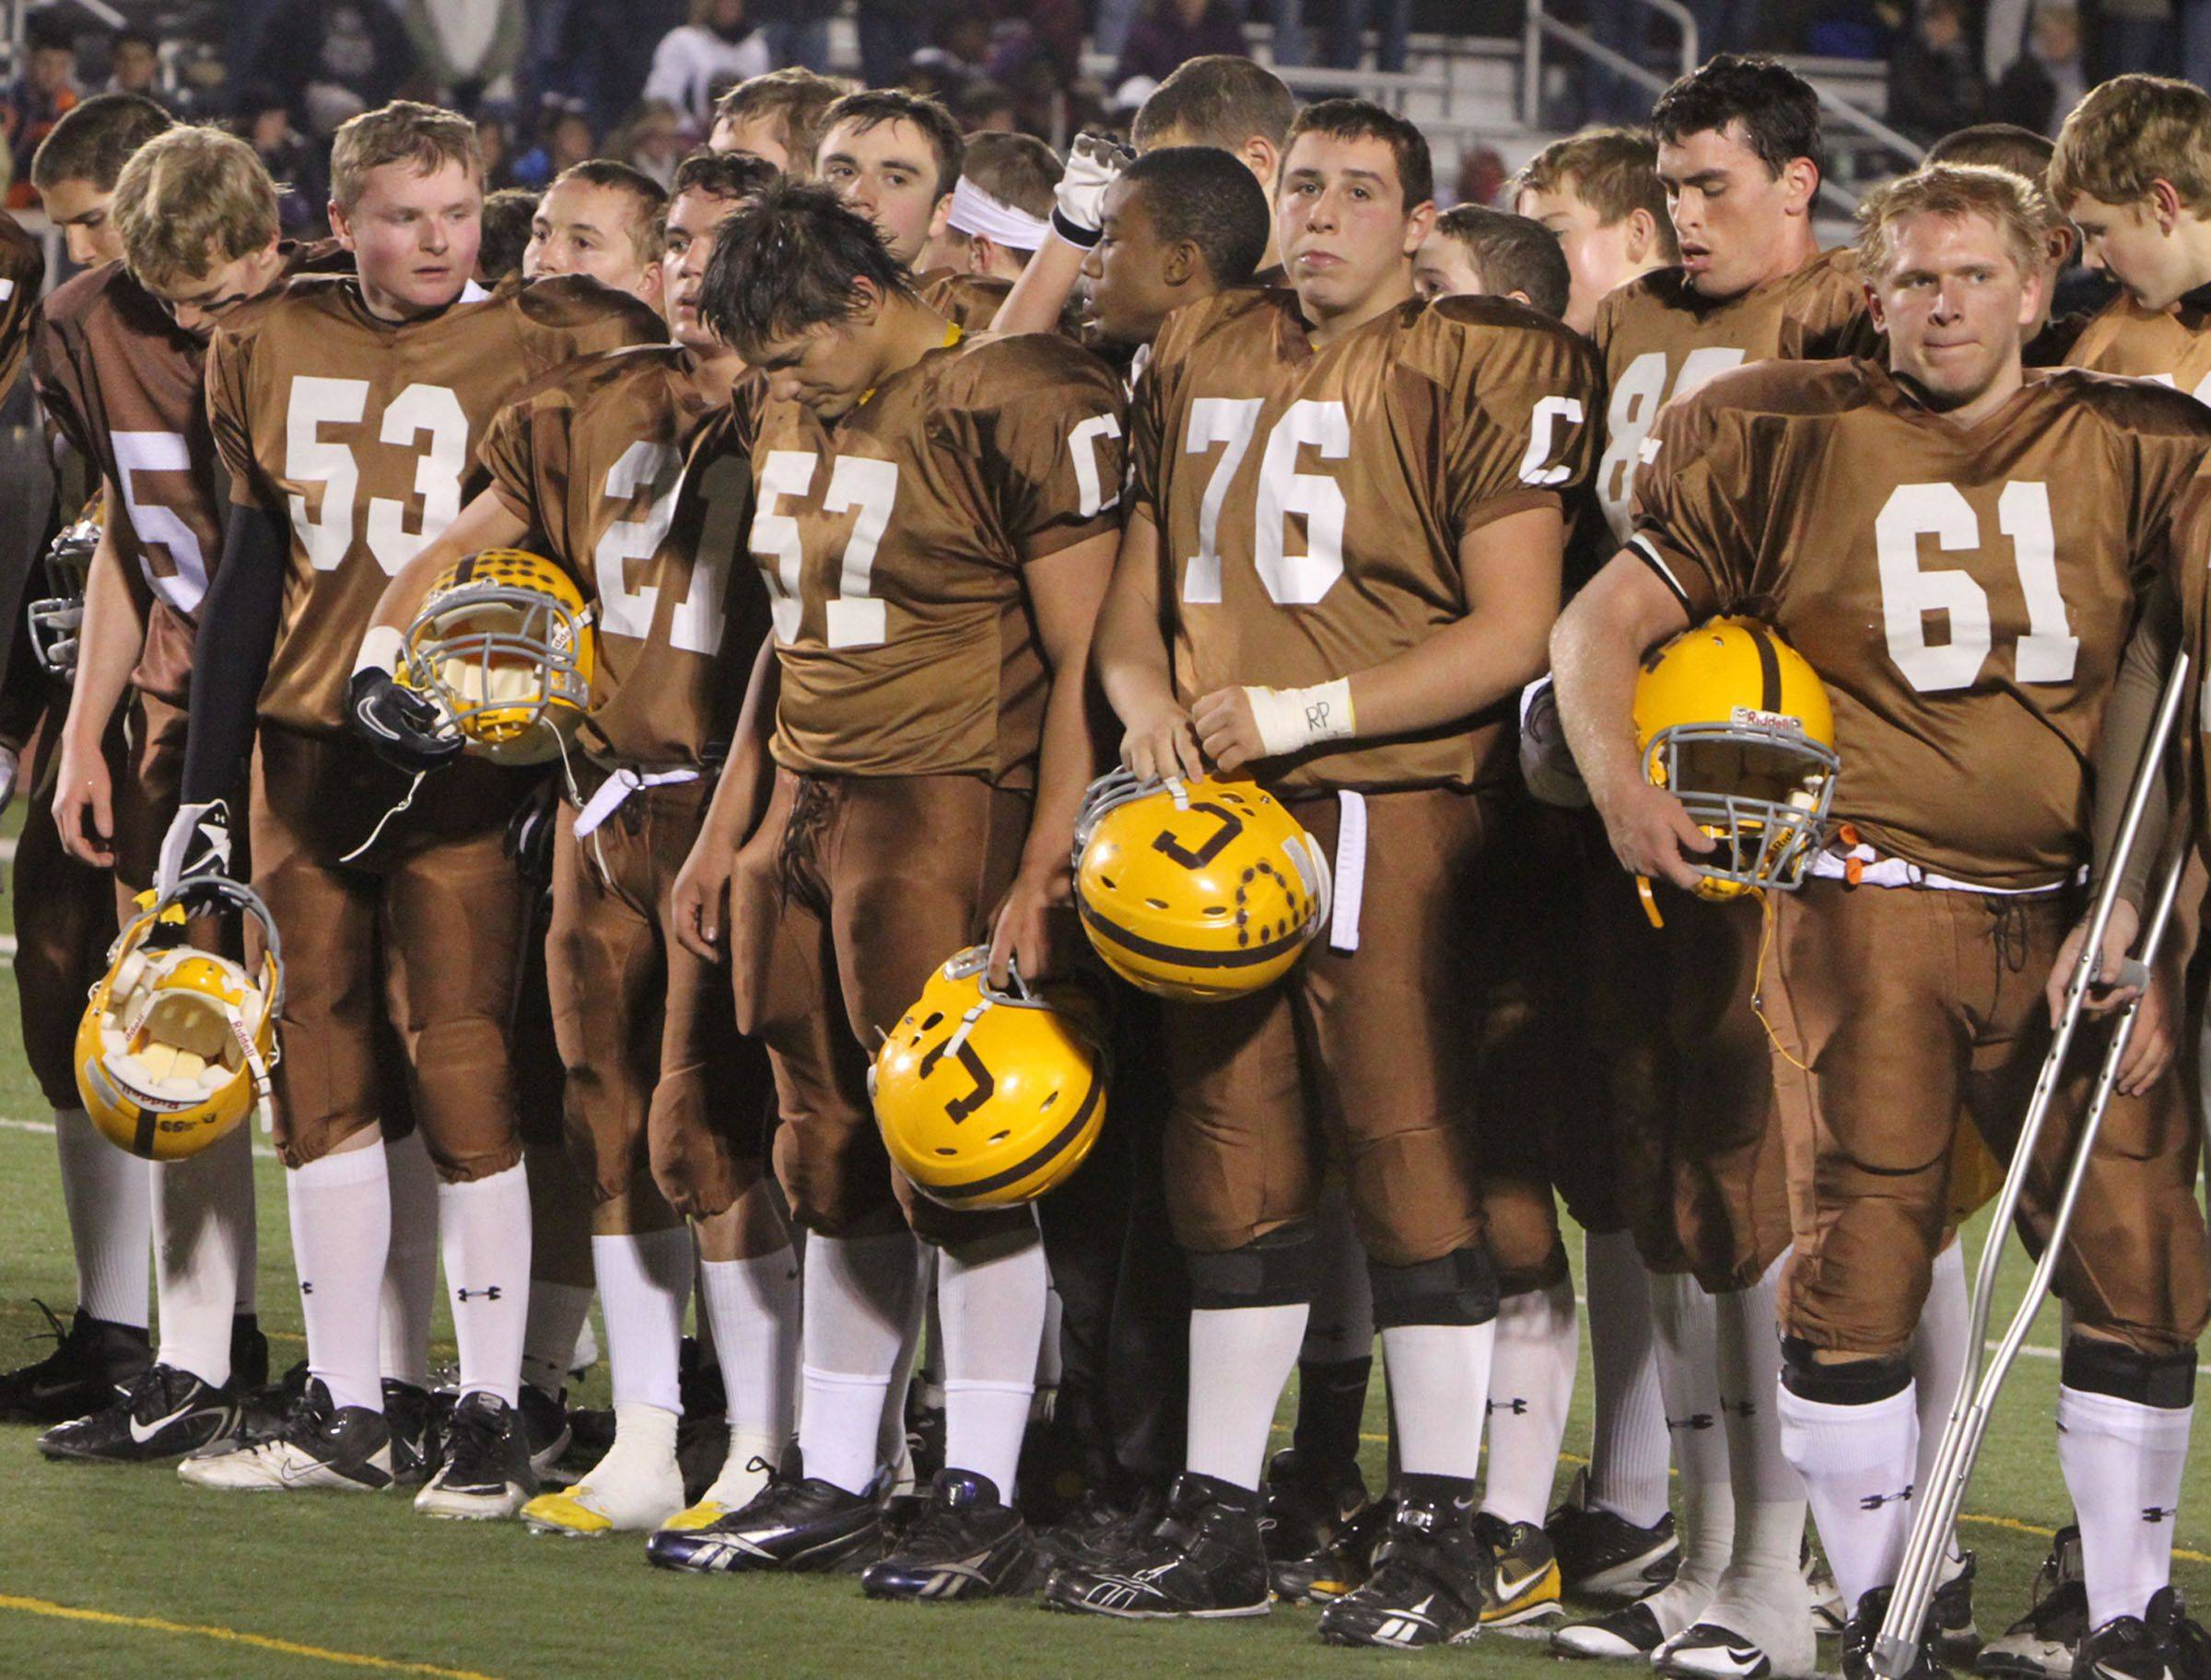 Carmel football players observe a moment of silence for Declan Sullivan, a 20-year-old junior from Long Grove, who died Wednesday at Norte Dame's practice football field, before Carmel's game with Elgin in round one of Class 7A state playoffs at Carmel in Mundelein on Friday, October 29.